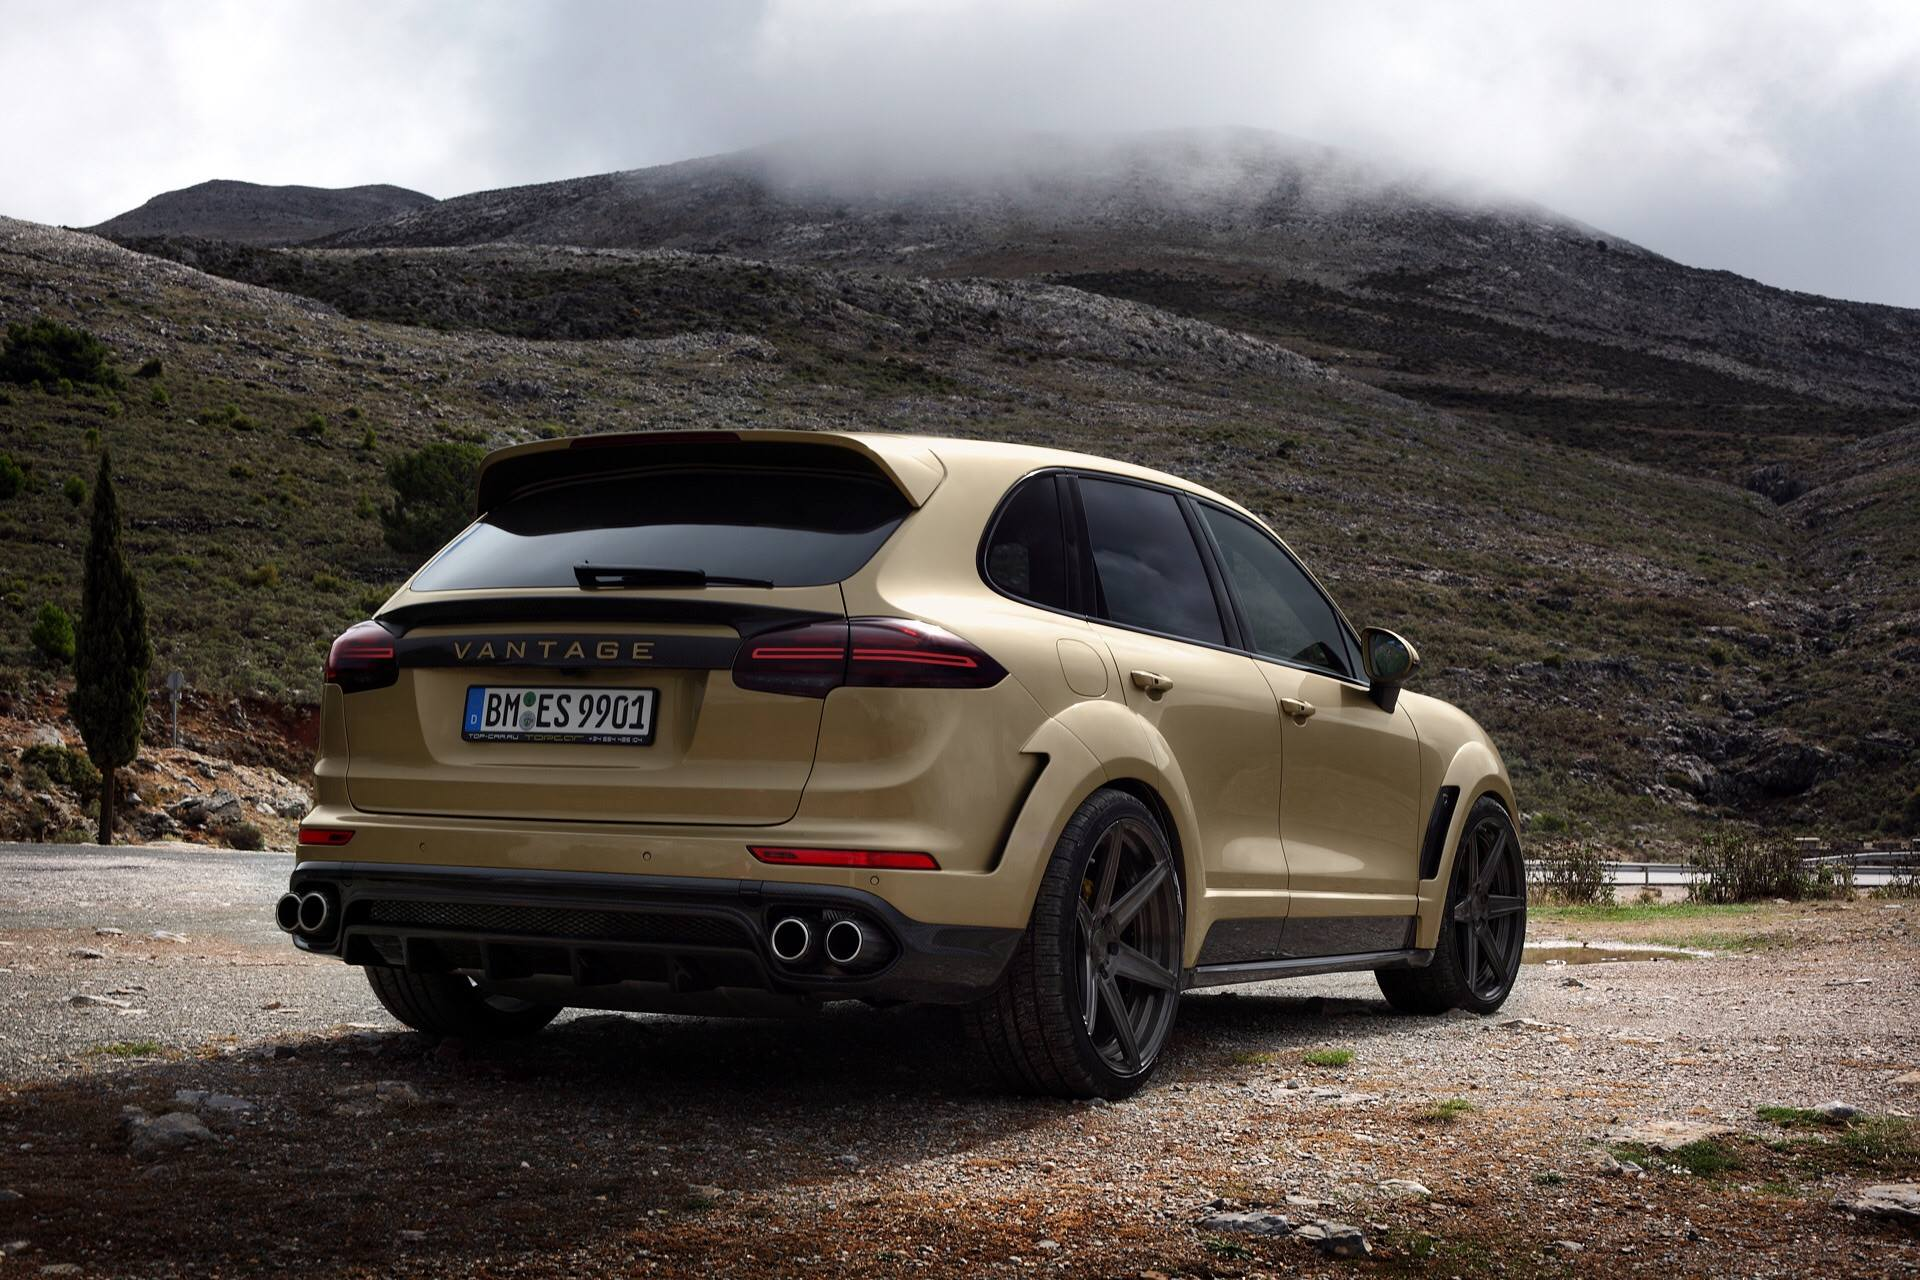 Billion Auto Group >> 2015 Porsche Cayenne HD Wallpapers: Subtle Giant - autoevolution